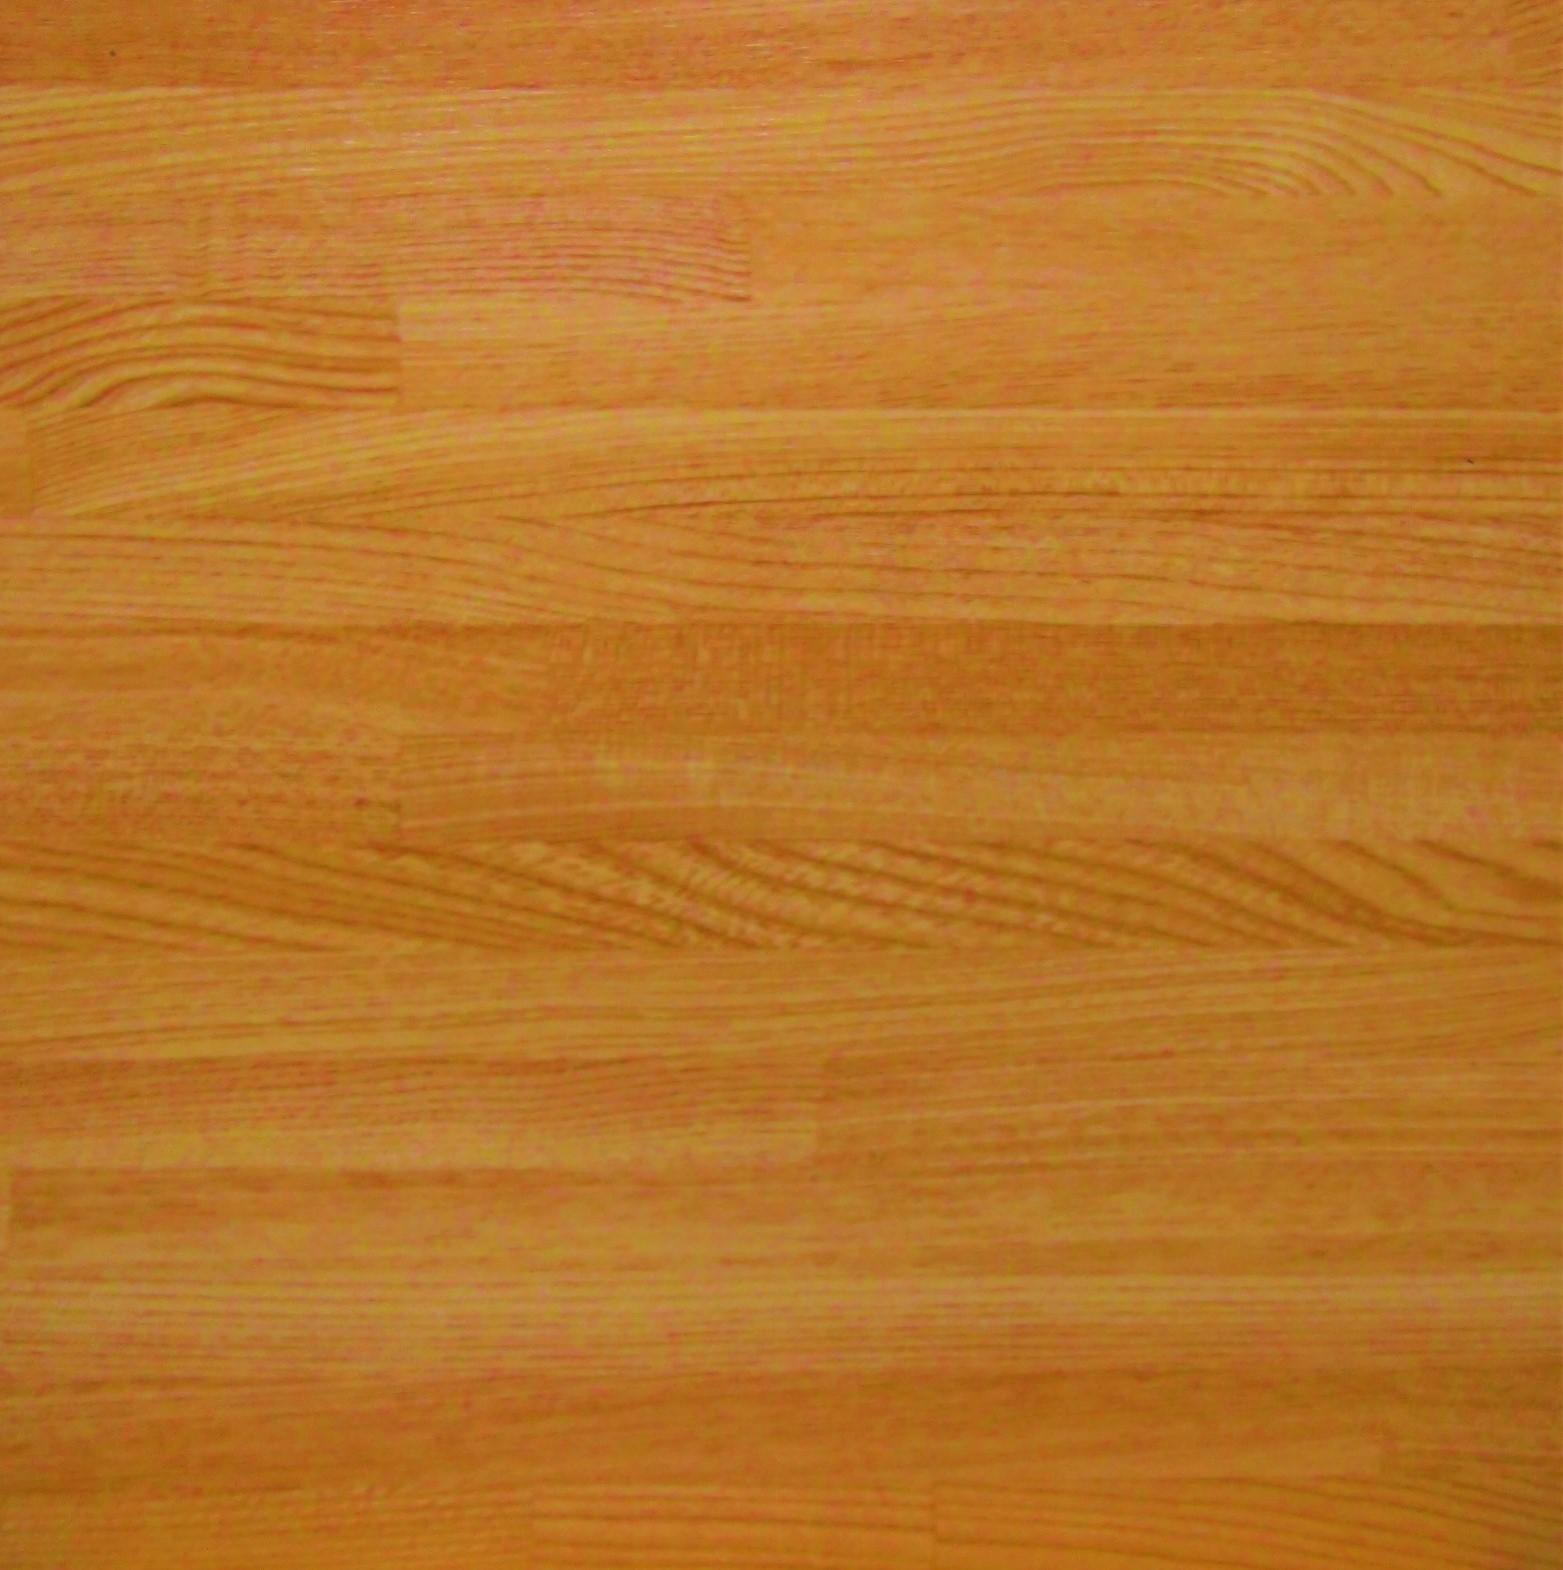 Vinyl Tiles For Sale Vinyl Flooring Prices Brands Review In